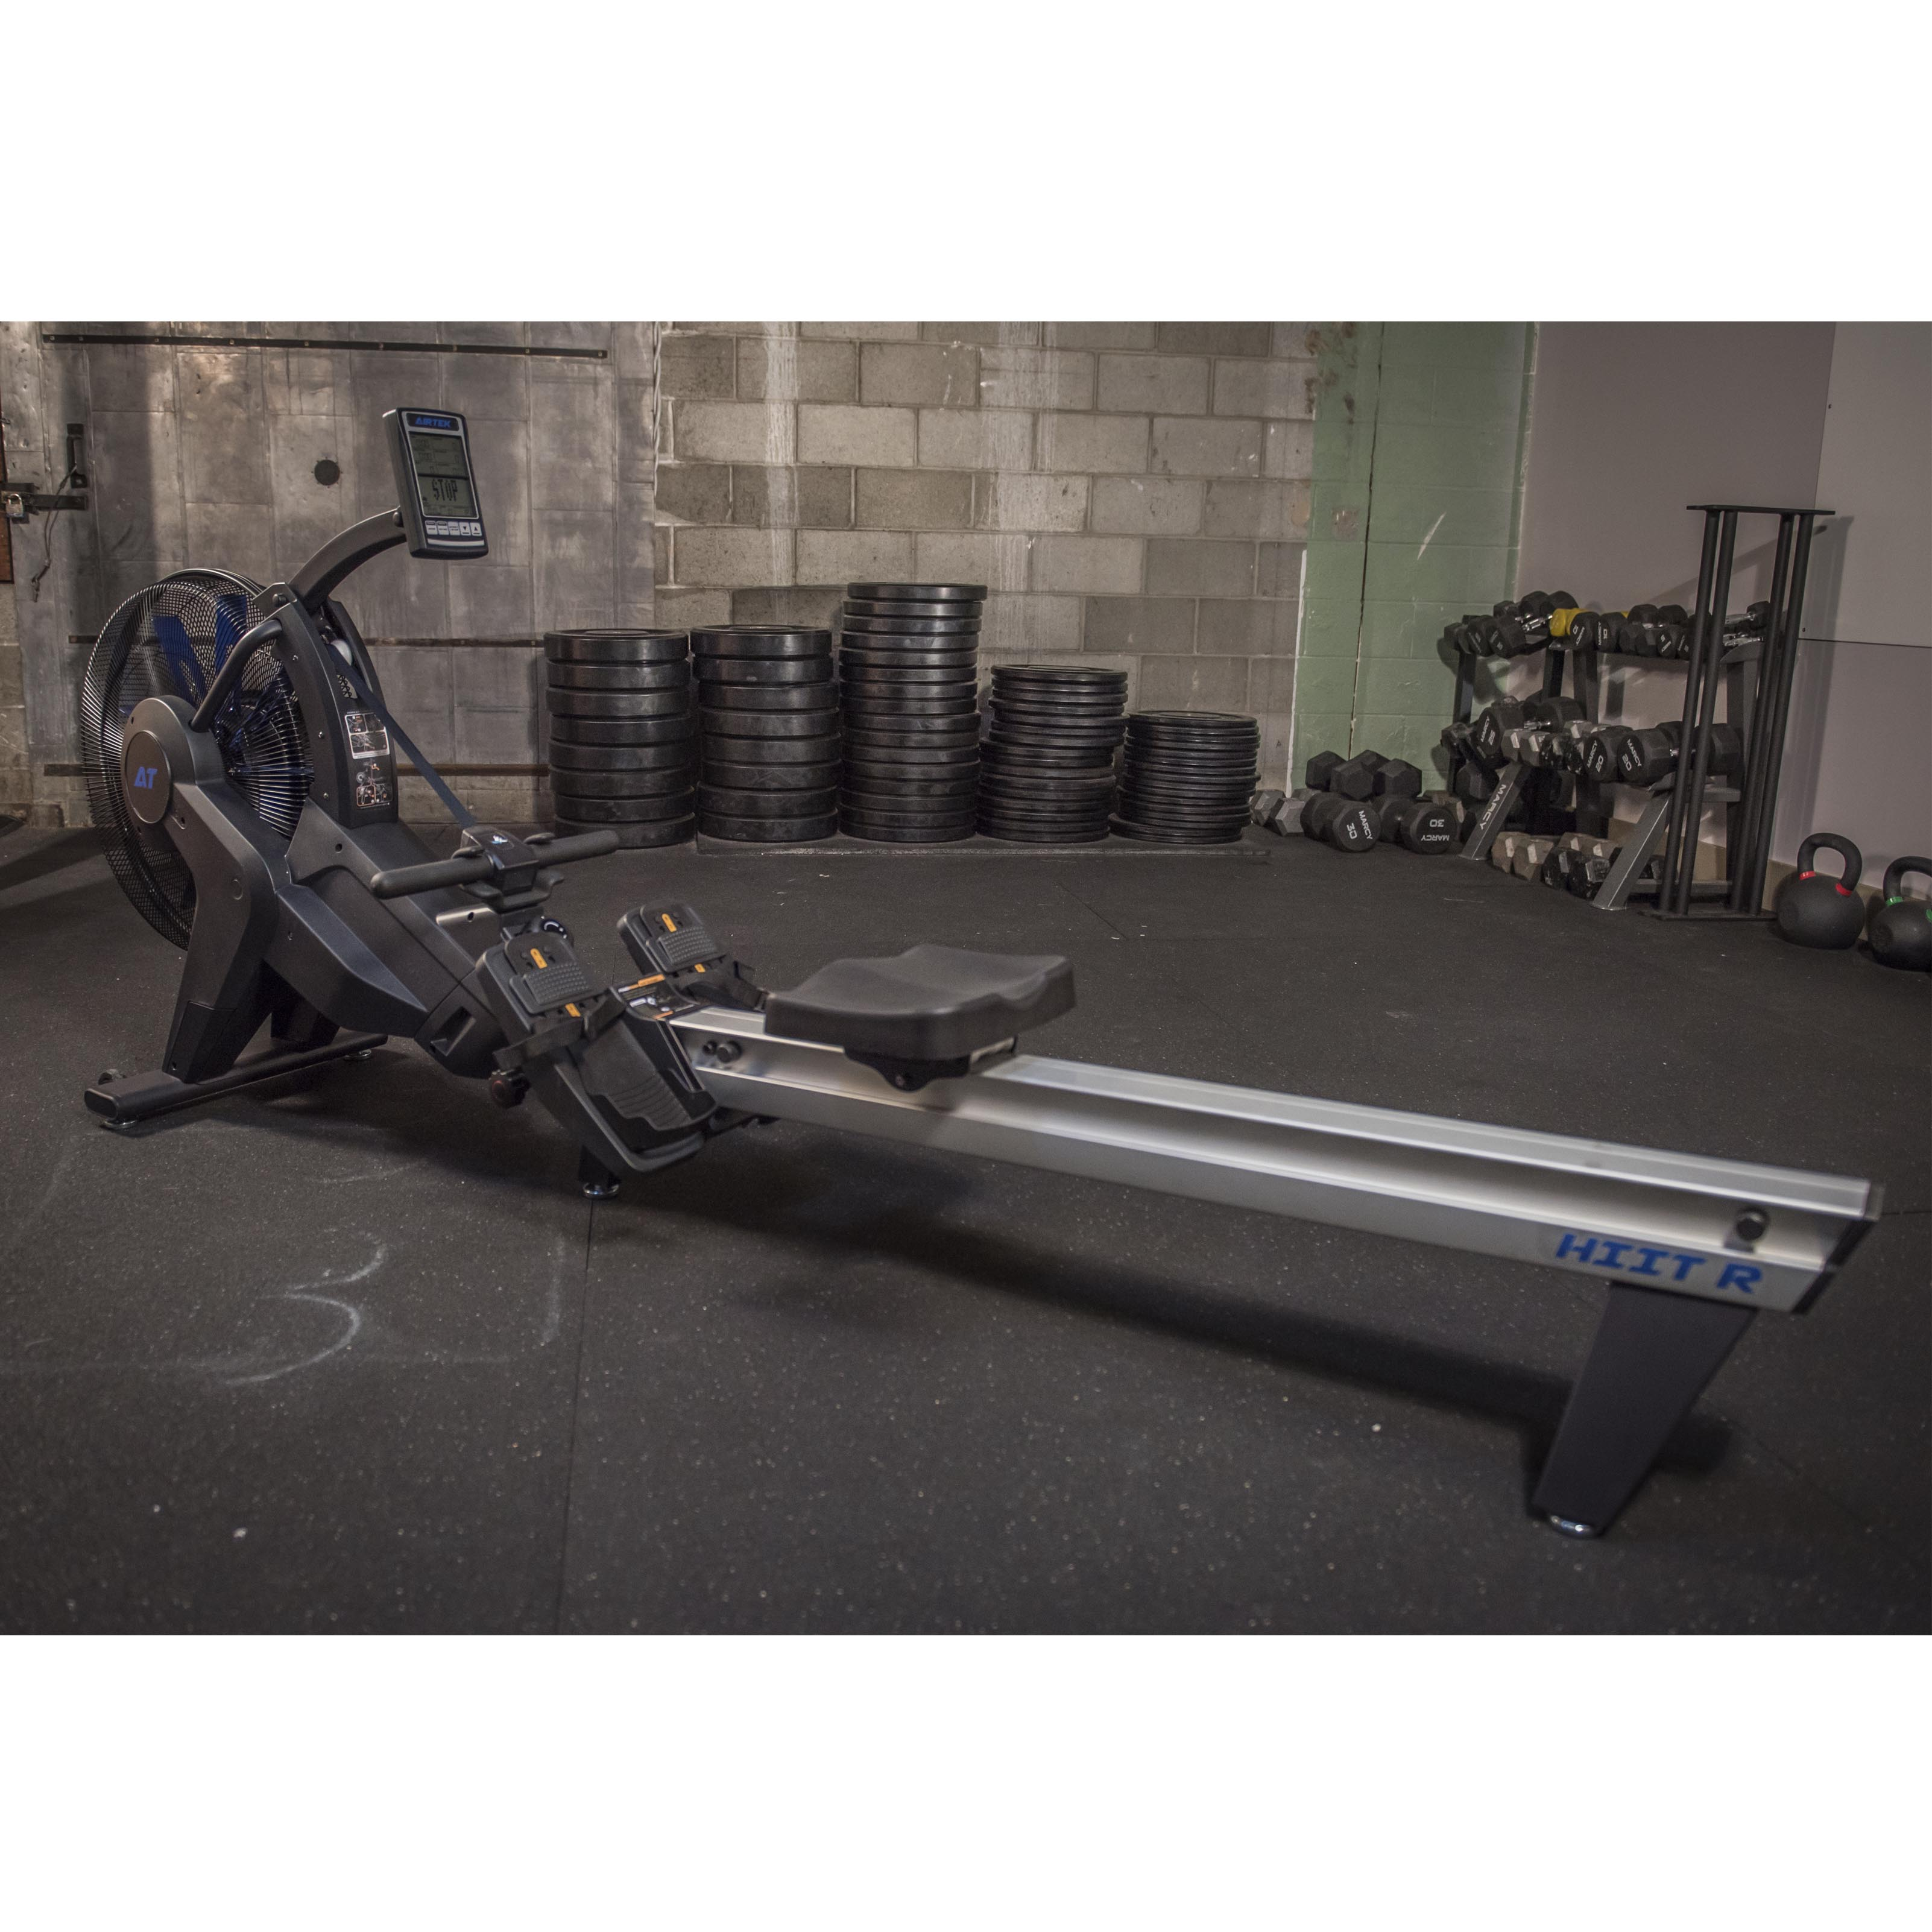 AirTEK Fitness HIIT Air and Magnetic Indoor Rower